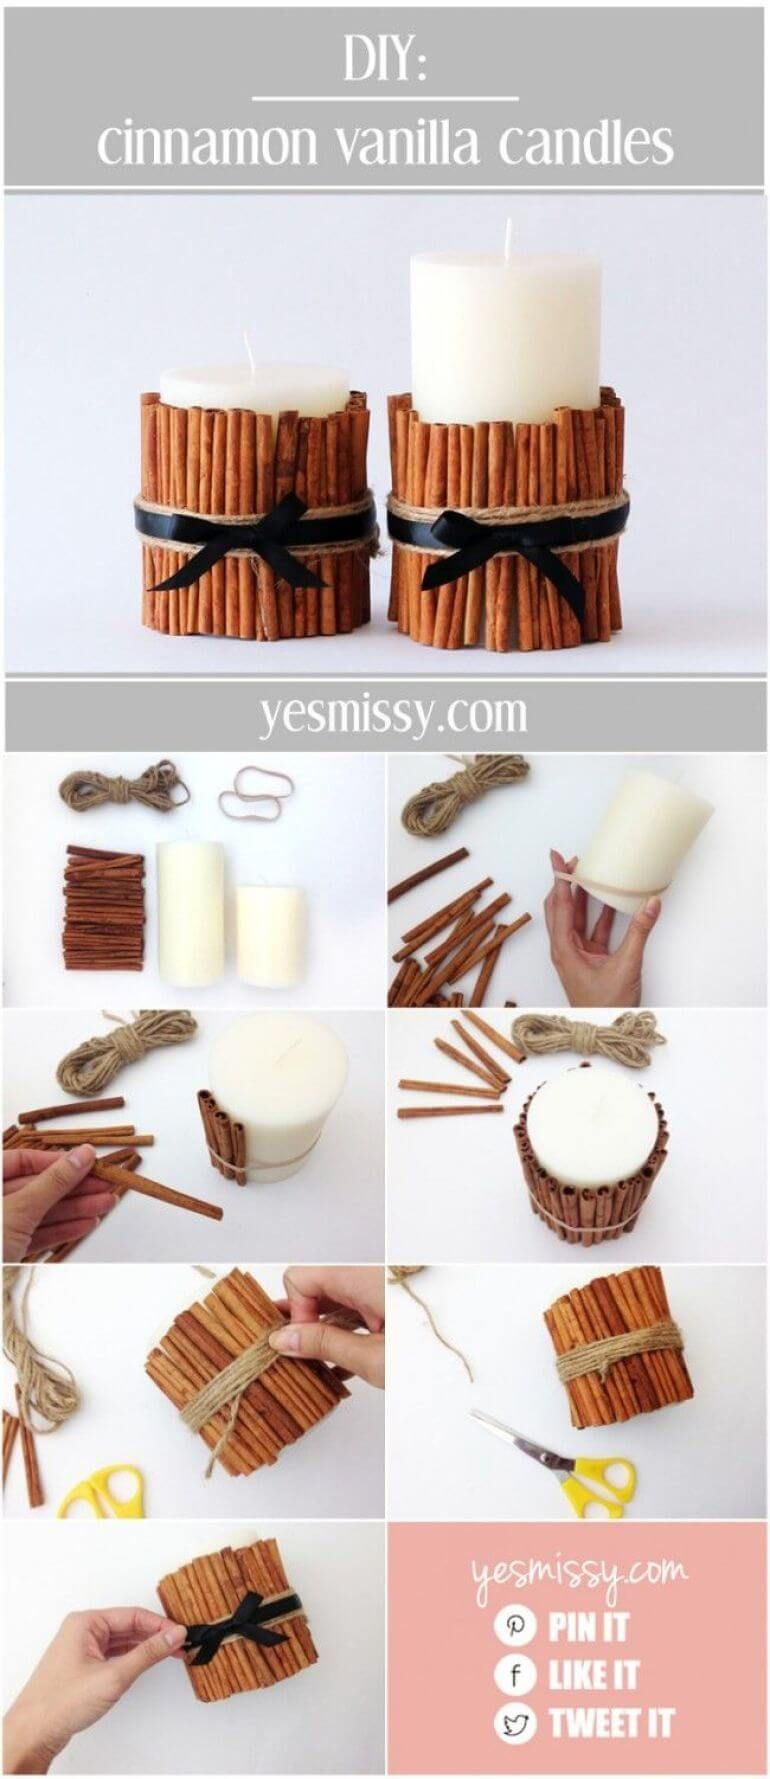 cinnamon sticks spice up candles